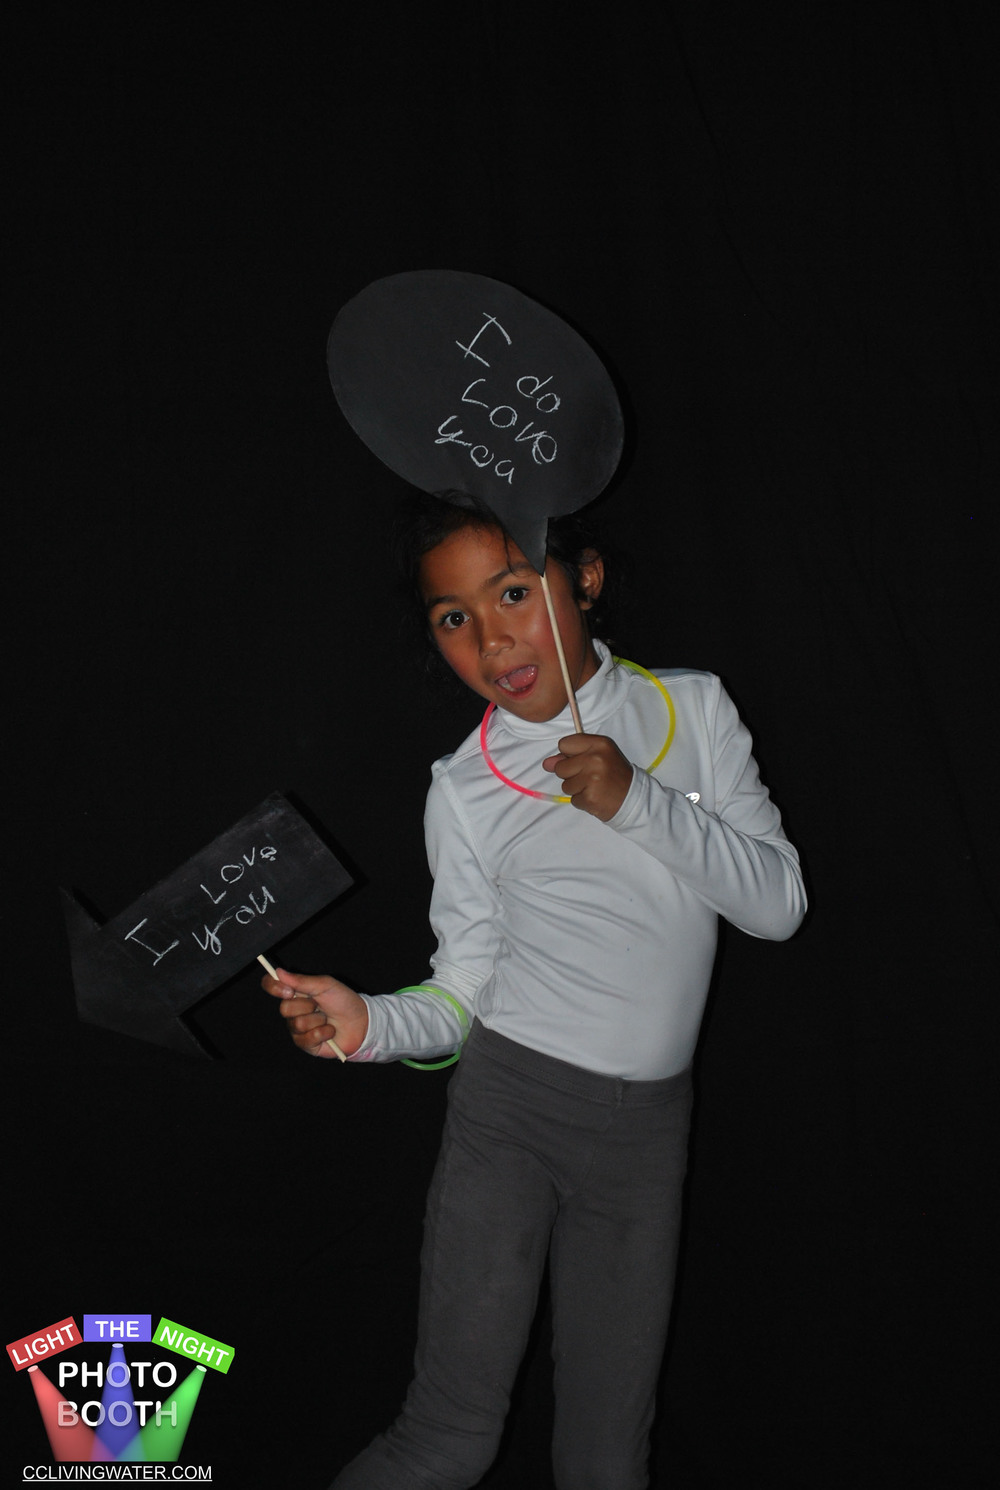 2014-10 - Light The Night Photo Booth (253) copy.jpg